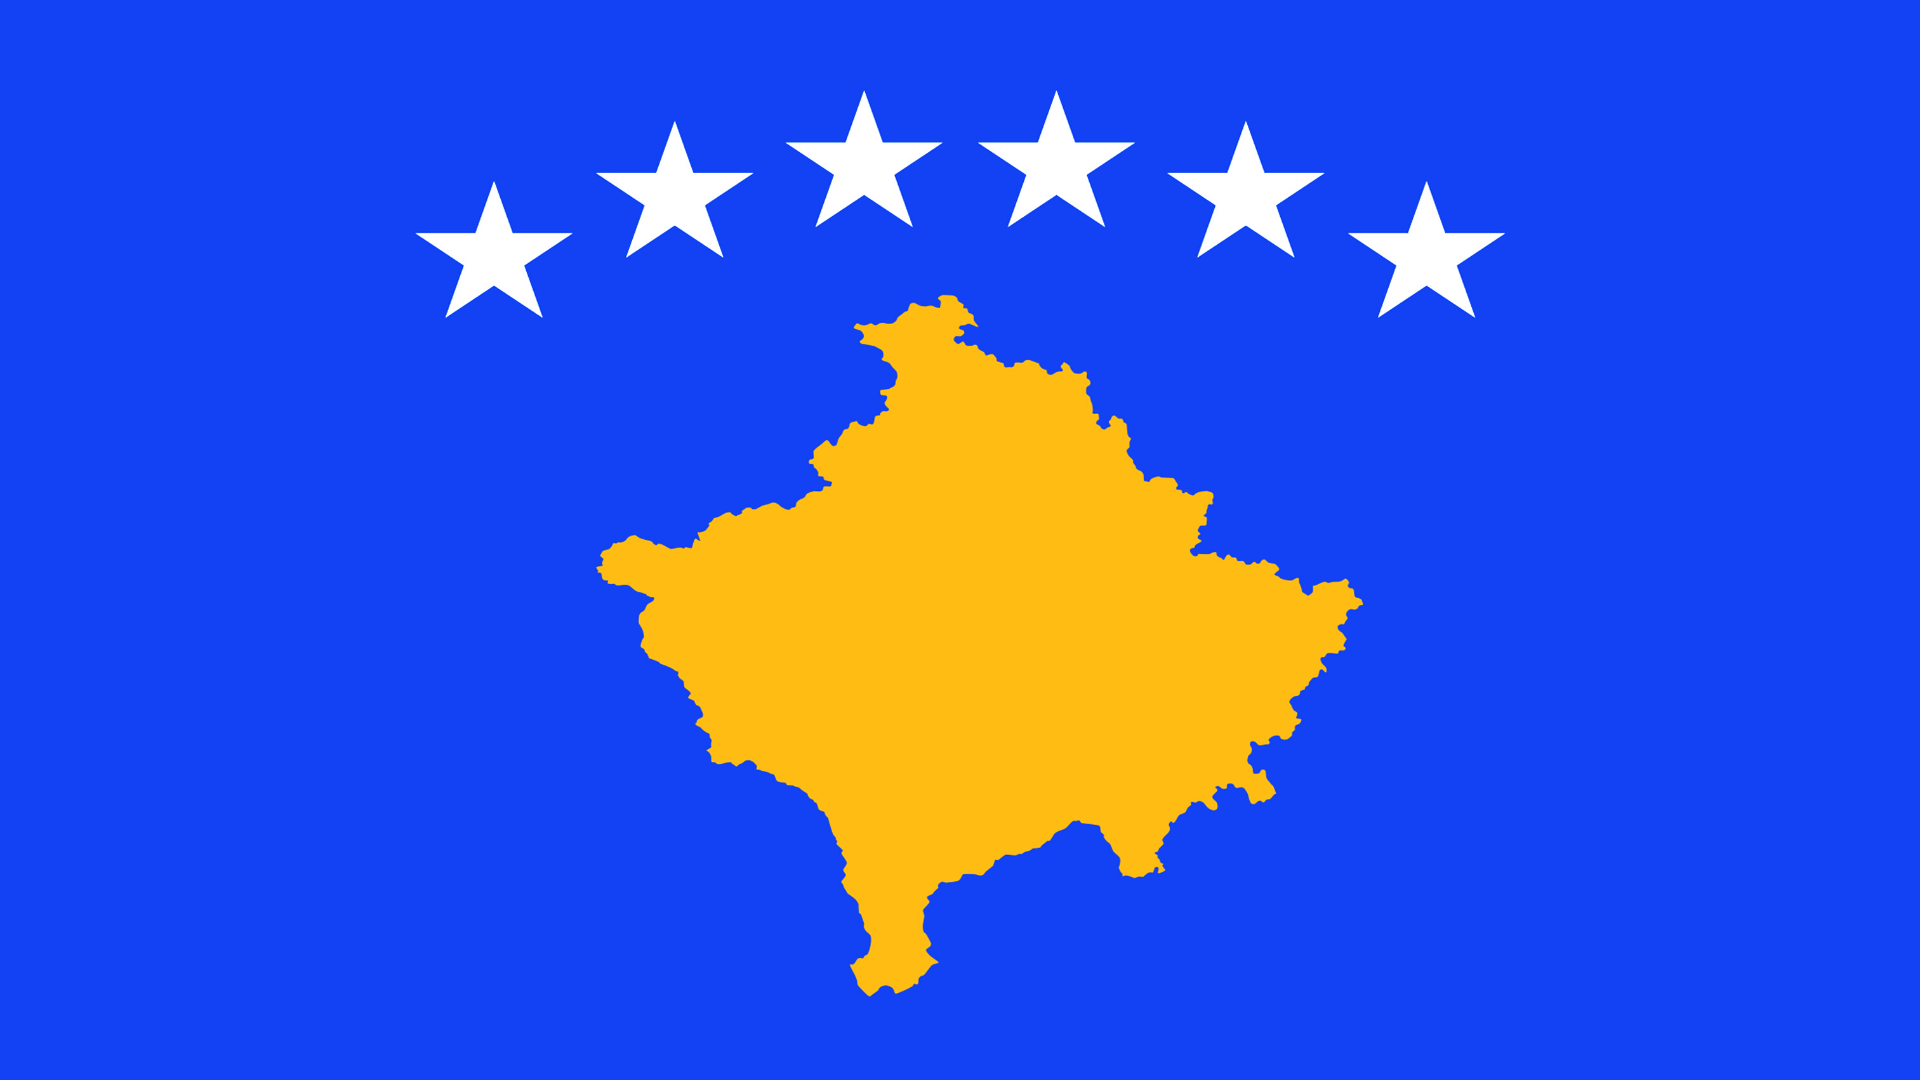 Kosovo loves the U.S. even more after recent military donation